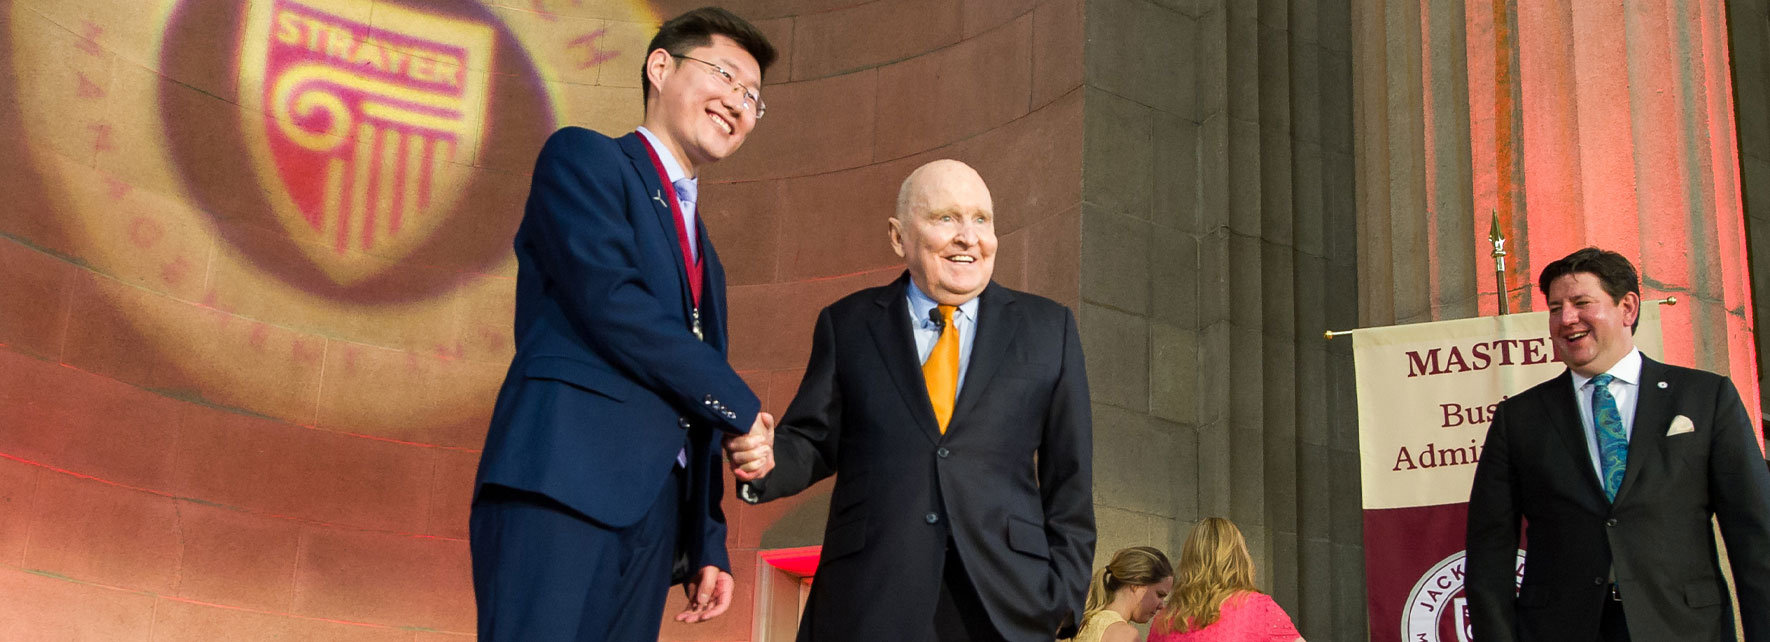 Jack Welch at JWMI Graduation